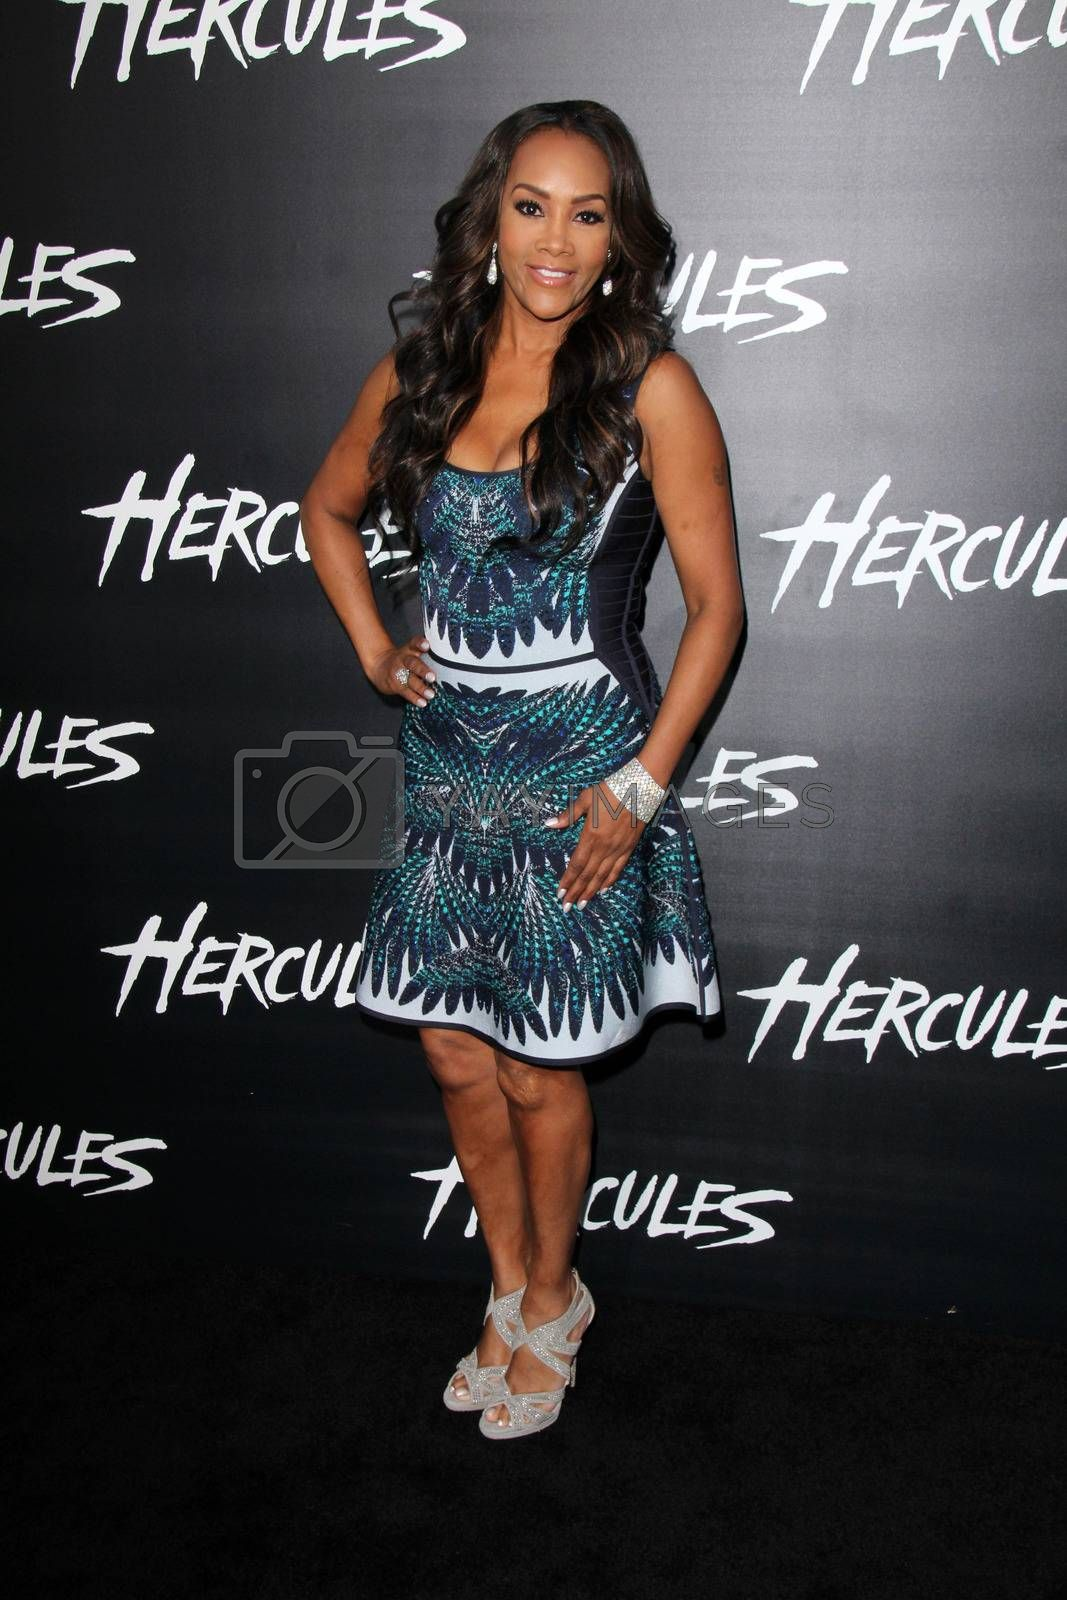 """Royalty free image of Vivica A. Fox at the """"Hercules"""" Los Angeles Premiere, TCL Chinese Theater, Hollywood, CA  07-23-14/ImageCollect by ImageCollect"""